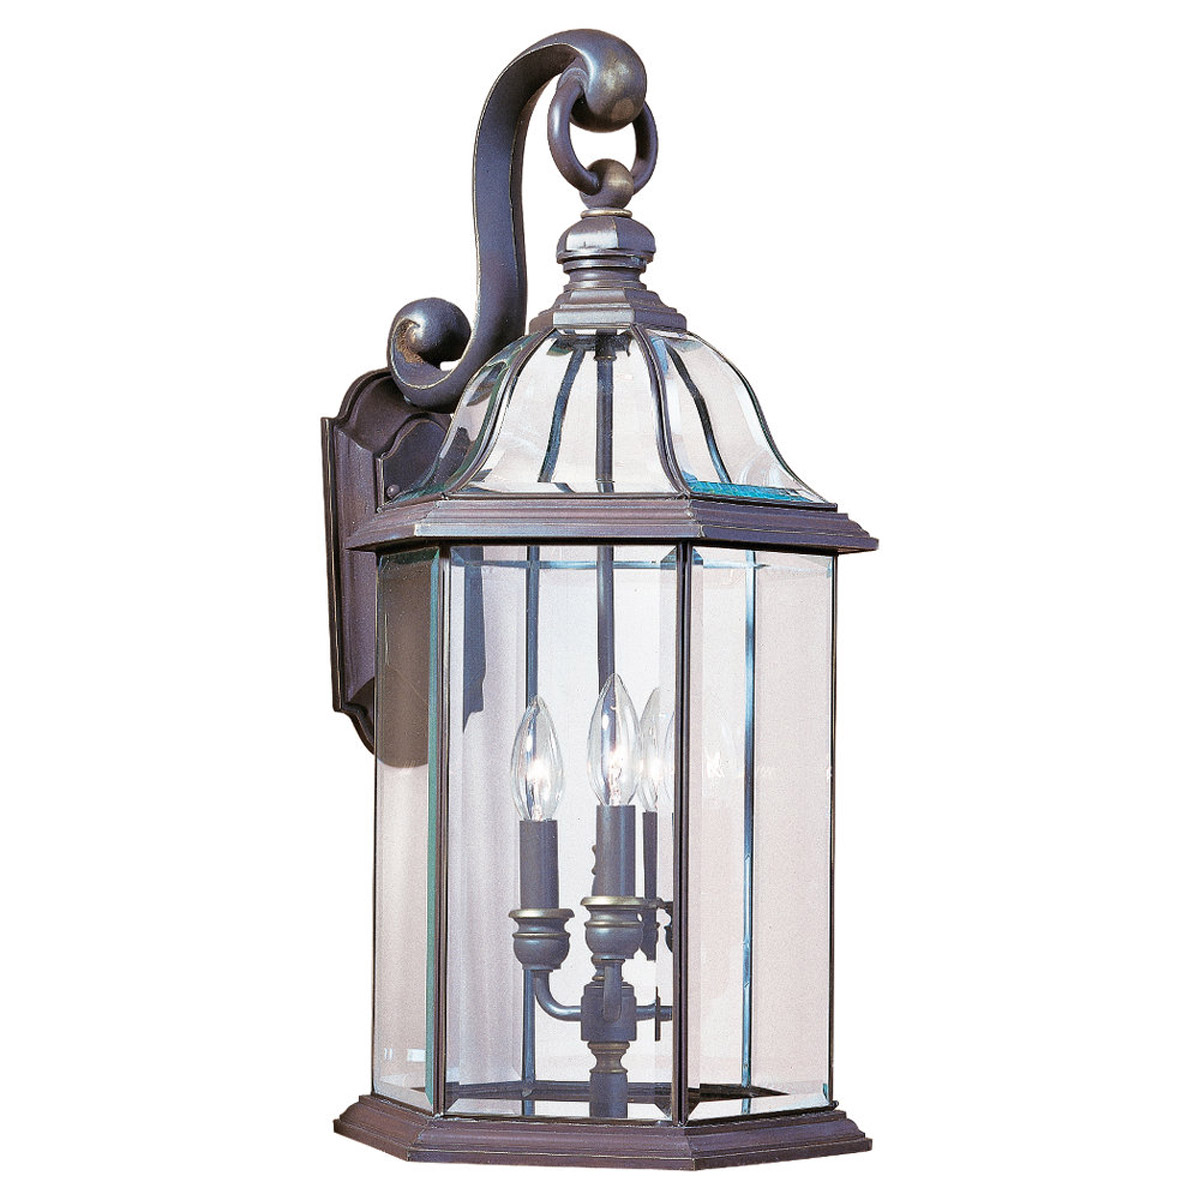 Sea Gull Lighting Barclay 3 Light Outdoor Wall Lantern in Antique Bronze 8052-71 photo